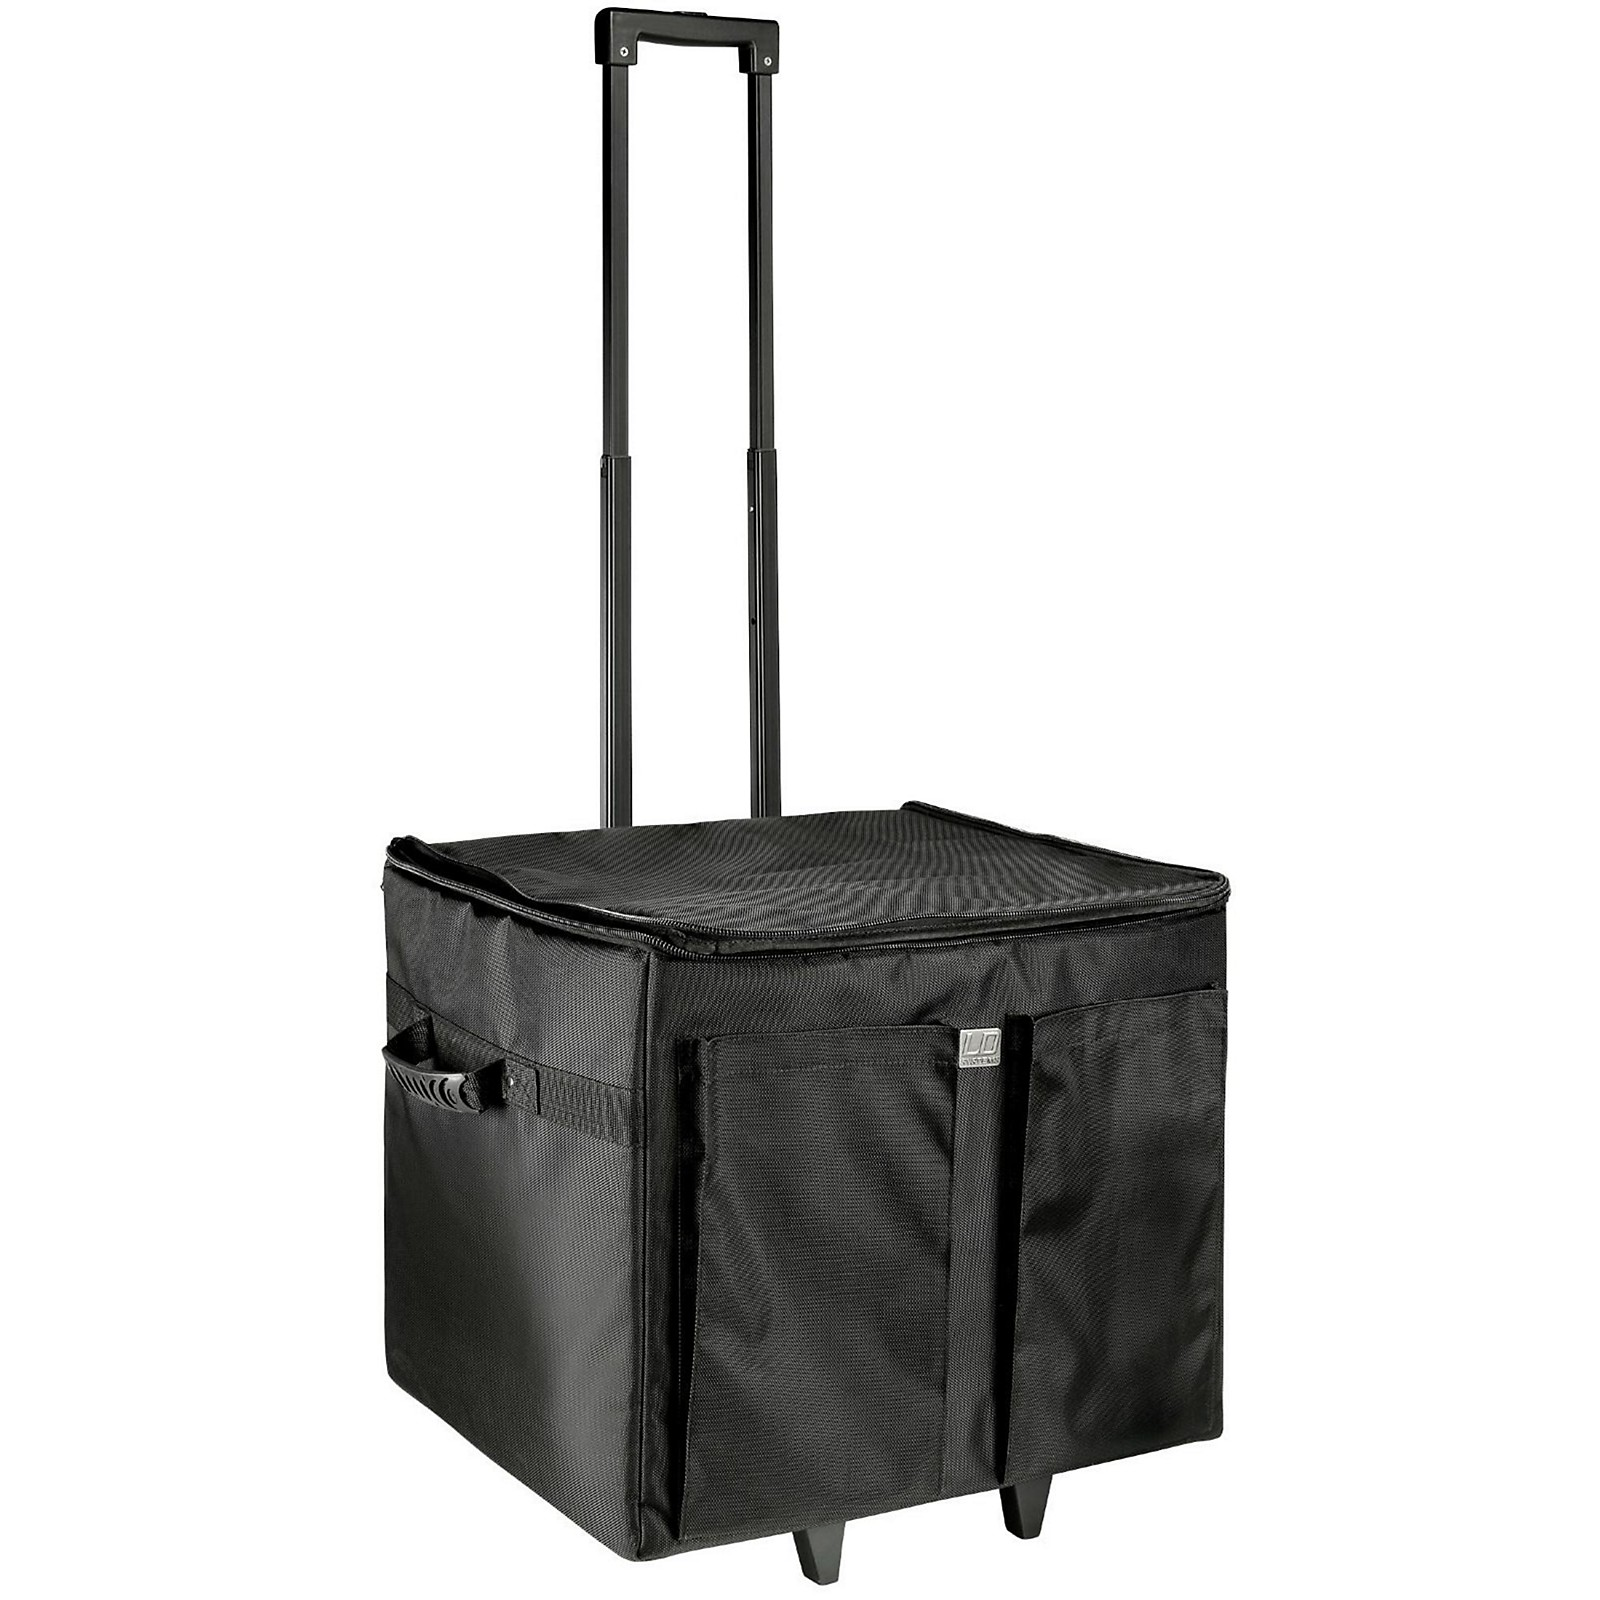 LD Systems Transport Trolley for CURV 500 Subwoofer